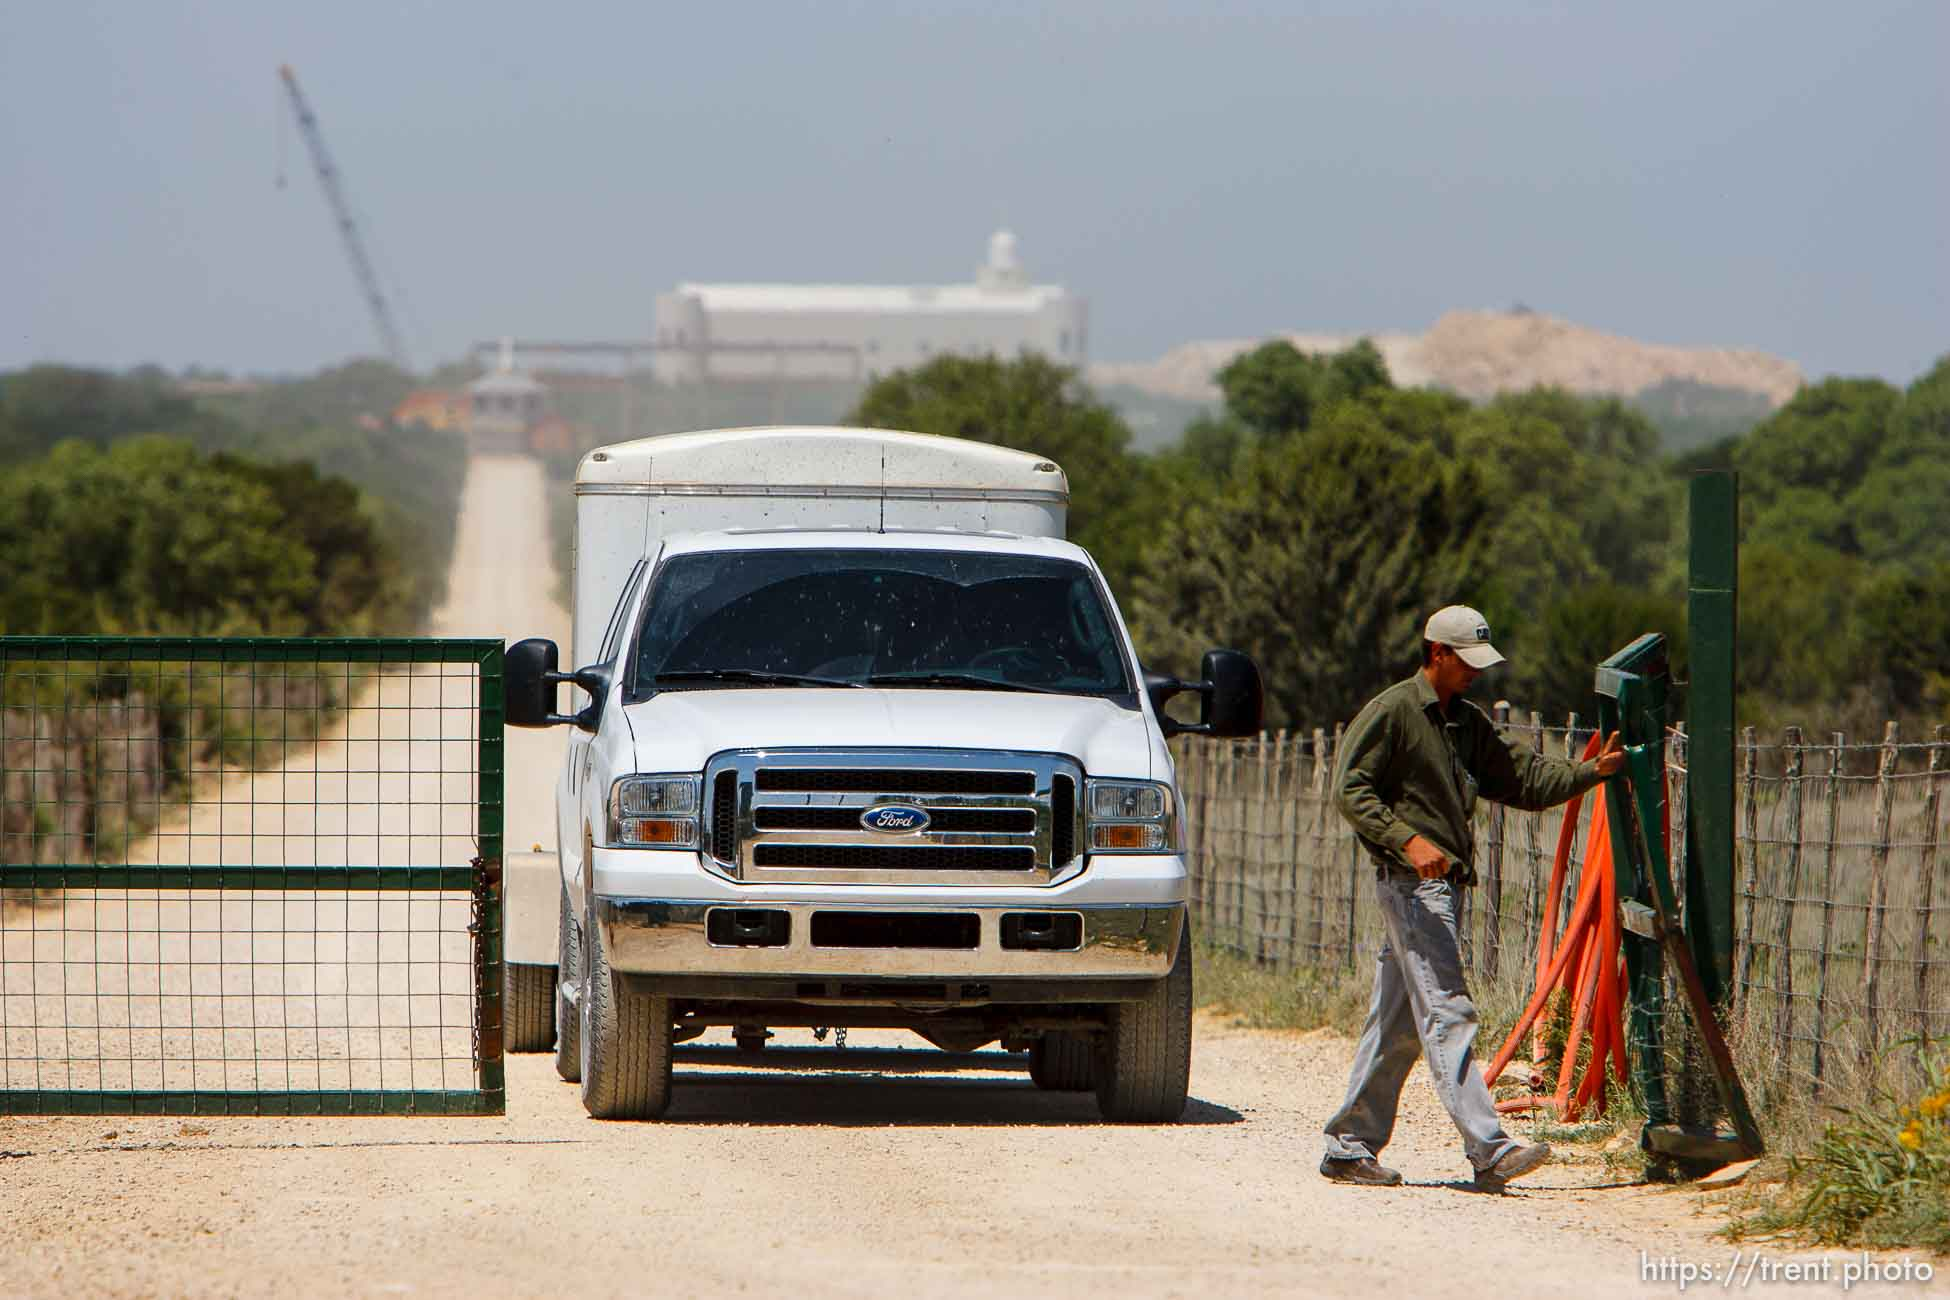 Eldorado - The front gate at the entrance of the FLDS church's YFZ Ranch. Temple. Wednesday April 30, 2008. trucks with trailers leaving the ranch, rumor was people moving out